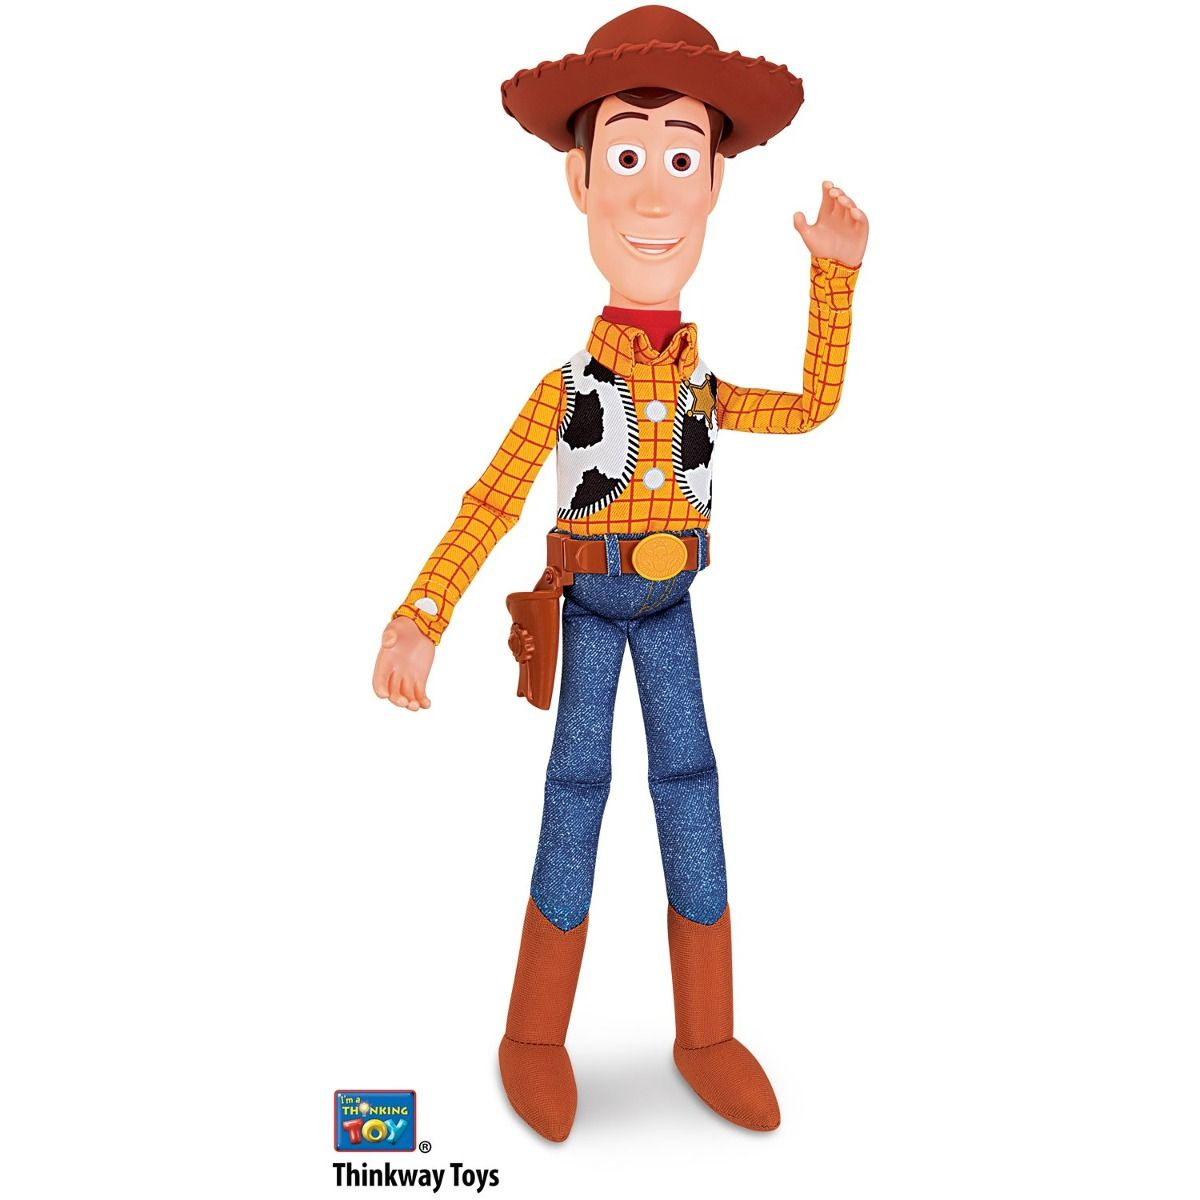 Boneco Toy Story Woody Fala 15 frases Portugues 40 cm - Toyng   - Doce Diversão